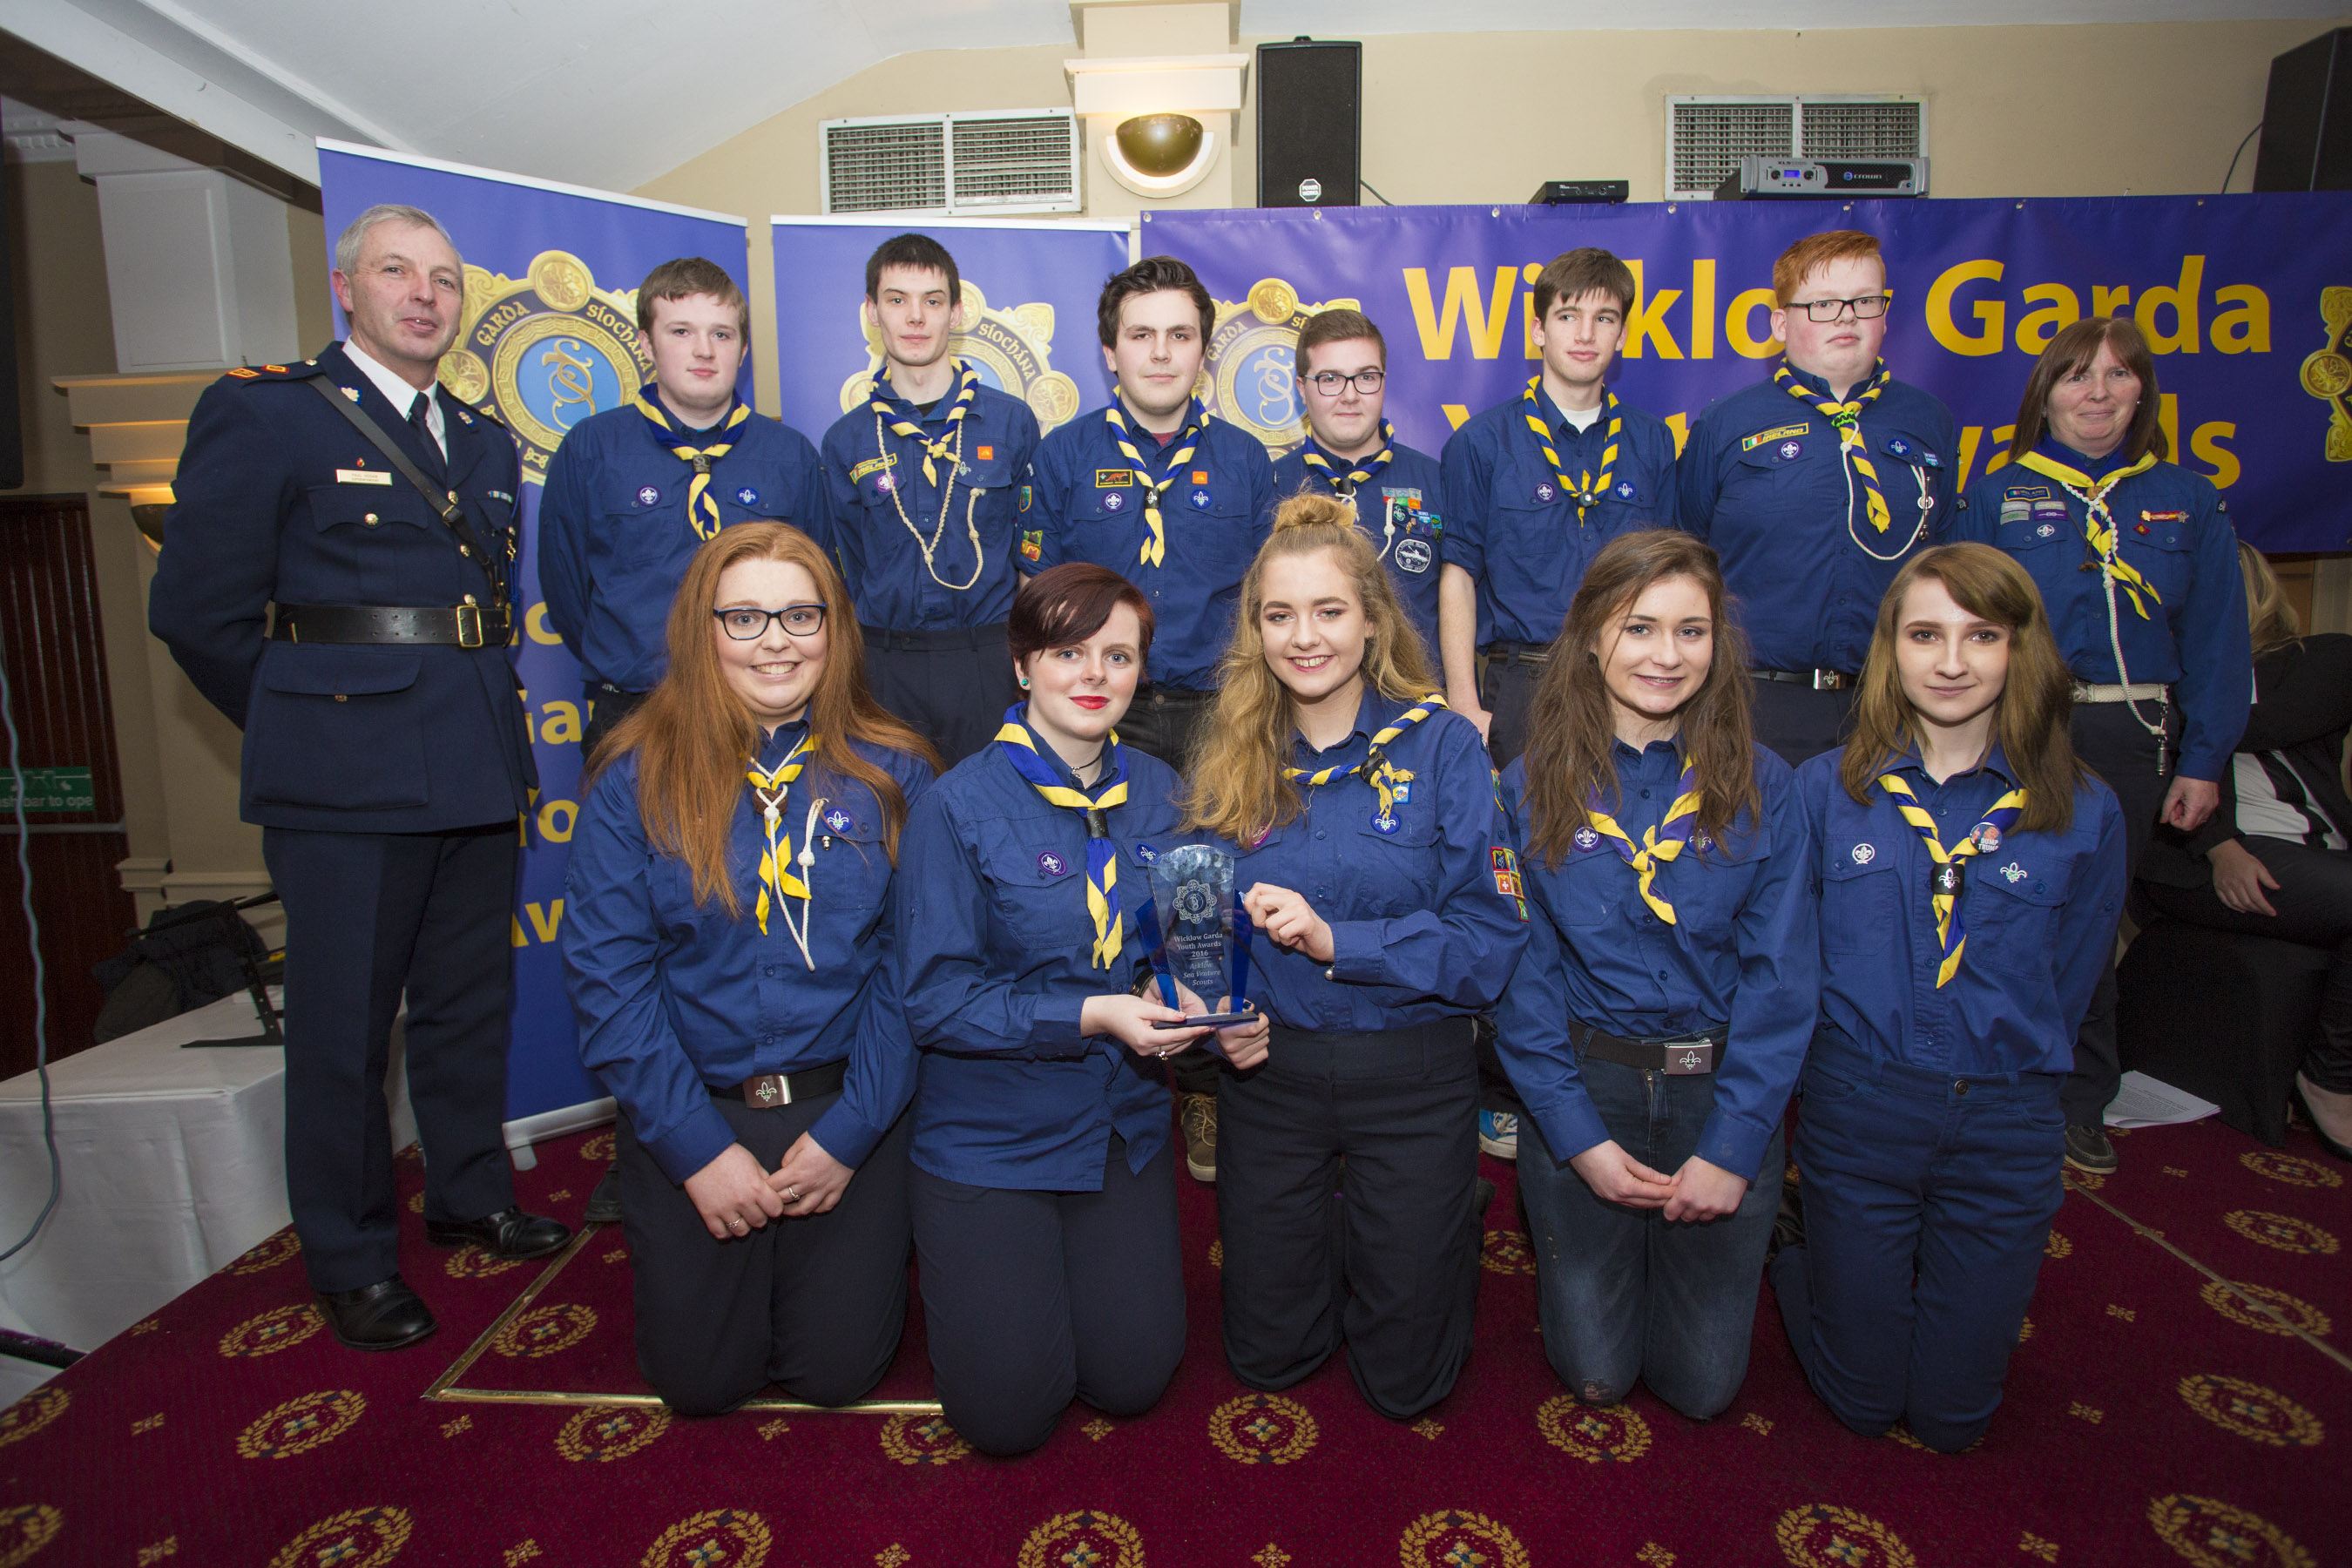 Members of the Arklow Sea Venture Scout Unit recieves their youth award from Superintendant Paul Hogan at the 2nd Annual Wicklow Garda Youth Awards which was held in the Grand Hotel, Wicklow Town.